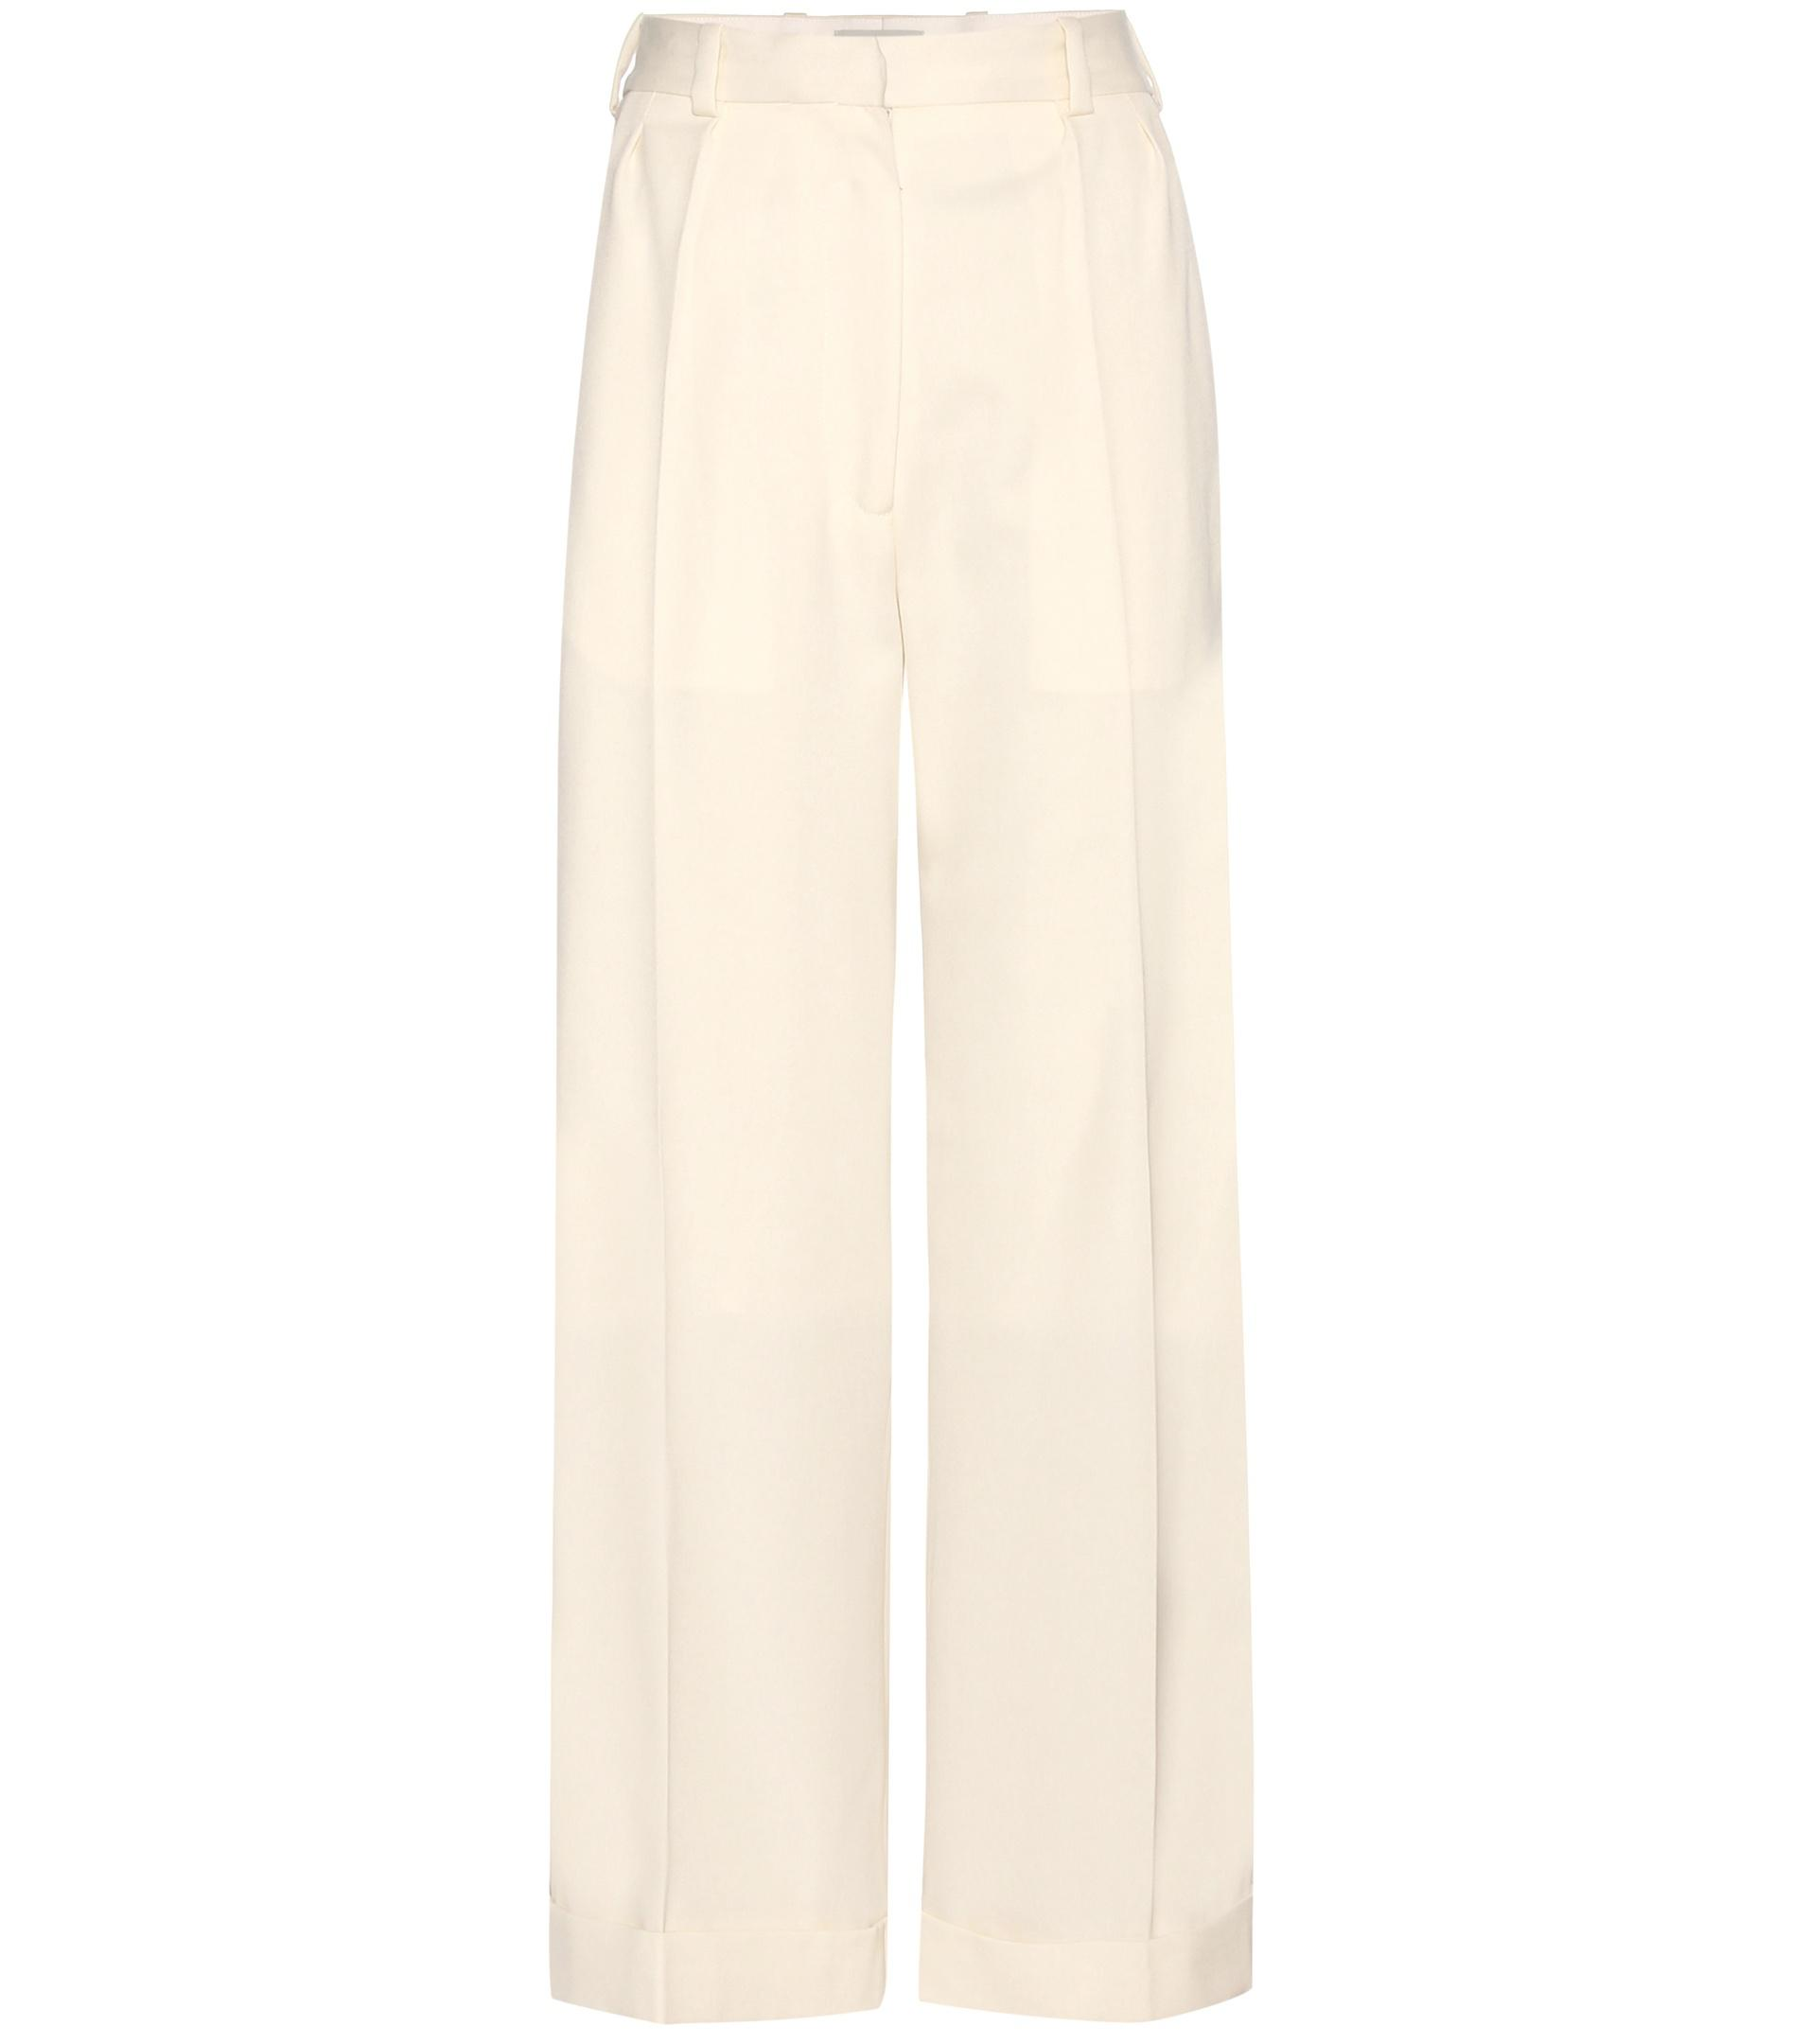 Cropped wide-leg wool trousers Hillier Bartley Yx7ye9